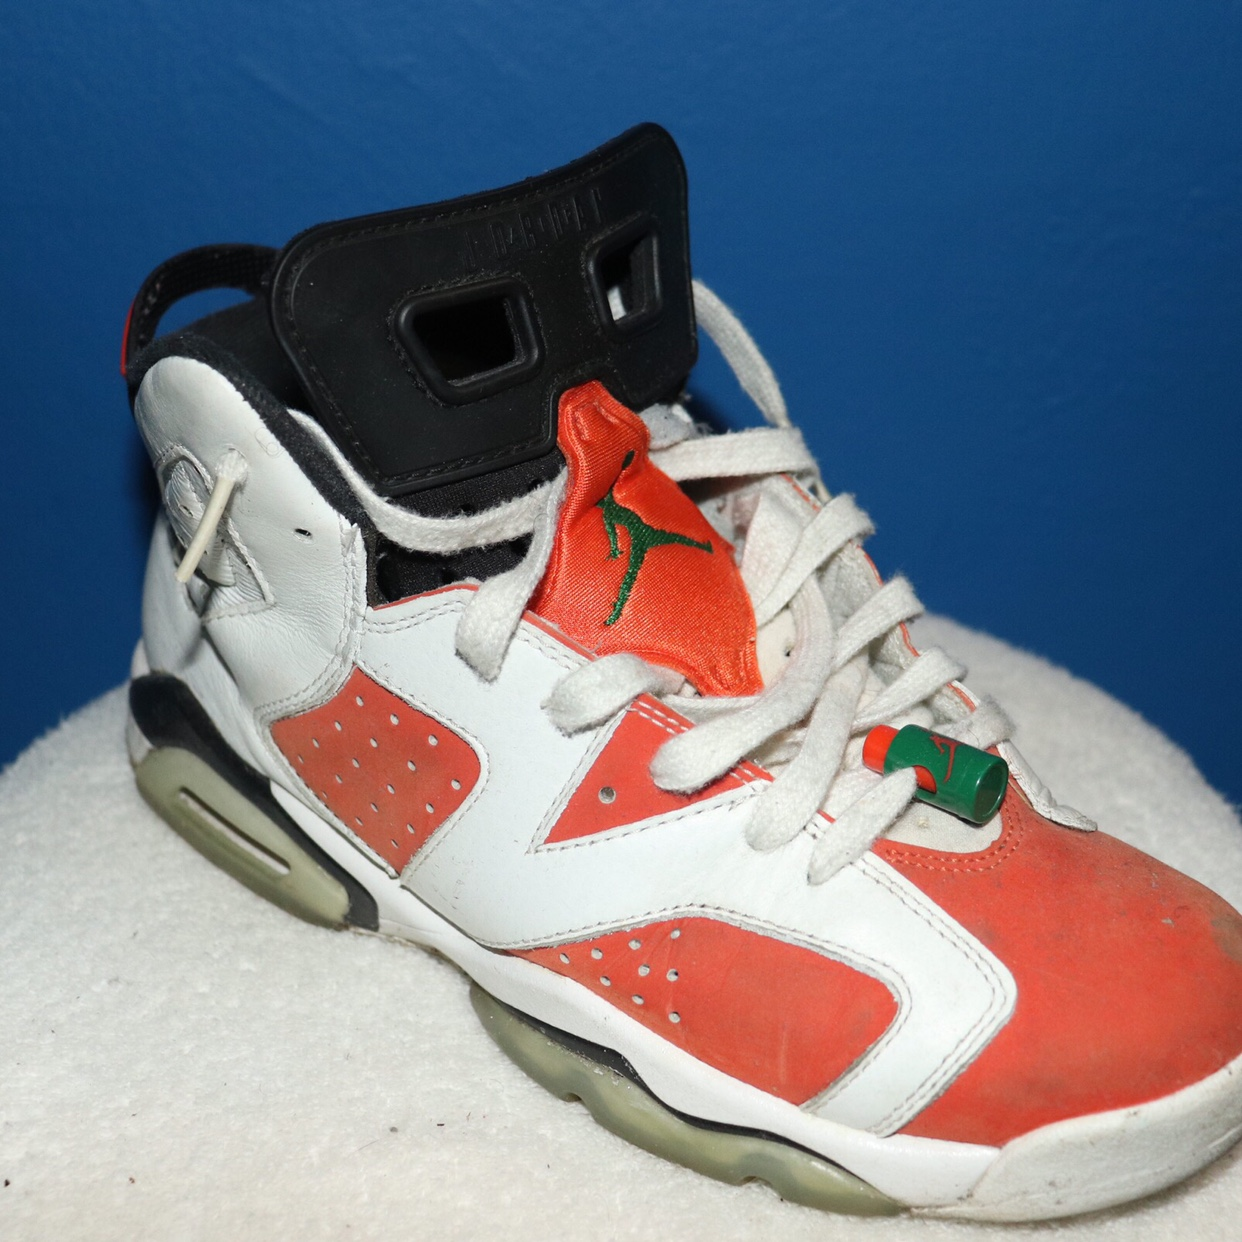 on sale 6c721 a914c JORDAN 6 Gatorade SIZE 7 RETAIL $140 NEED GONE ASAP... - Depop